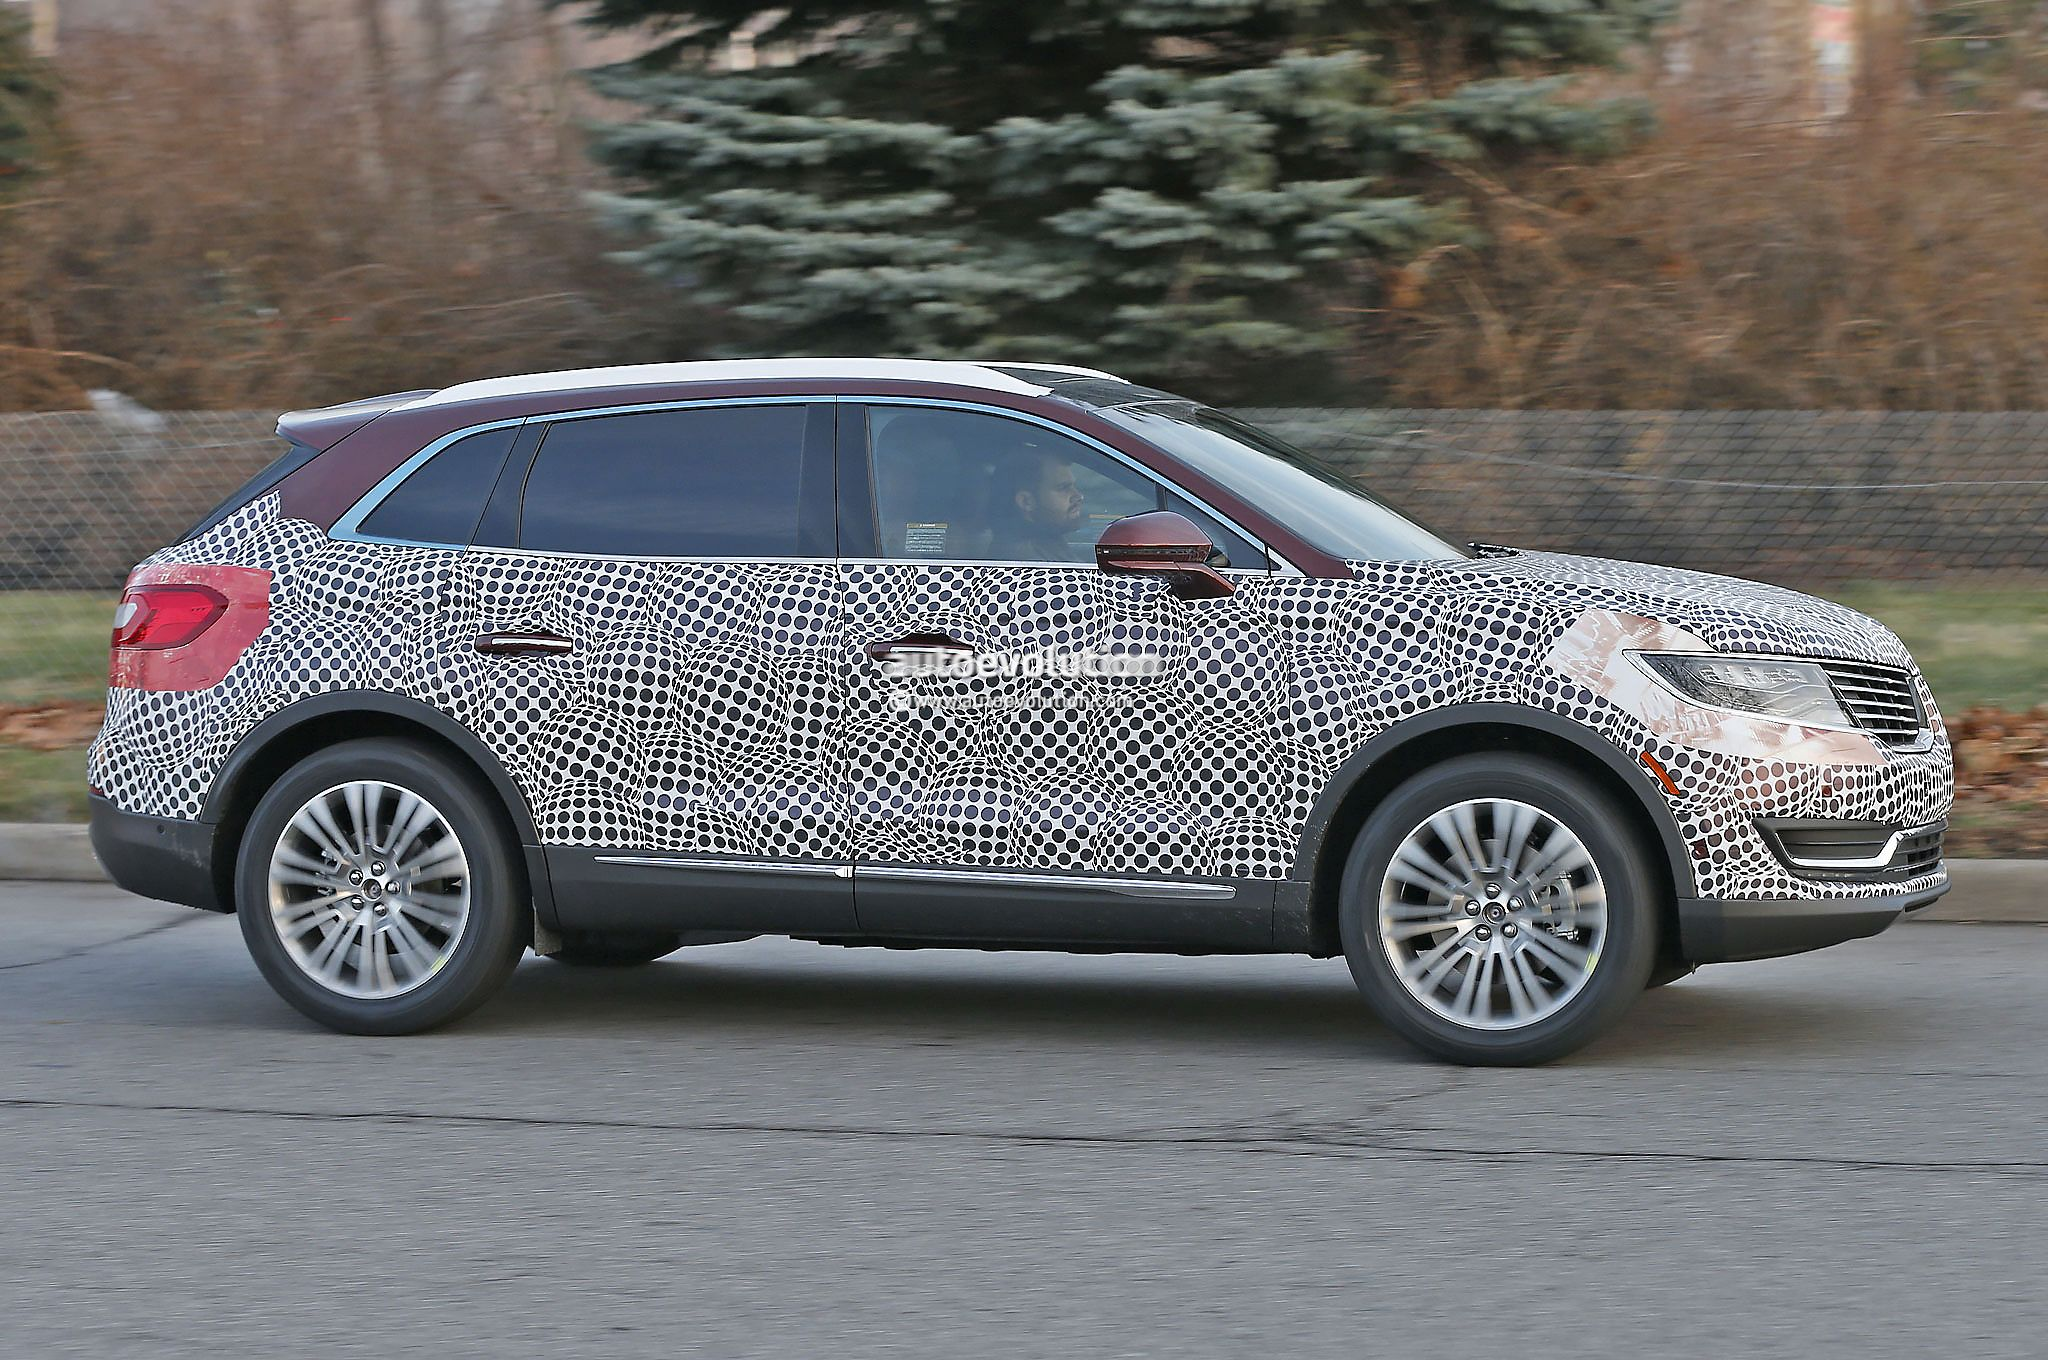 2016 lincoln mkx spied in production ready guise autoevolution. Black Bedroom Furniture Sets. Home Design Ideas